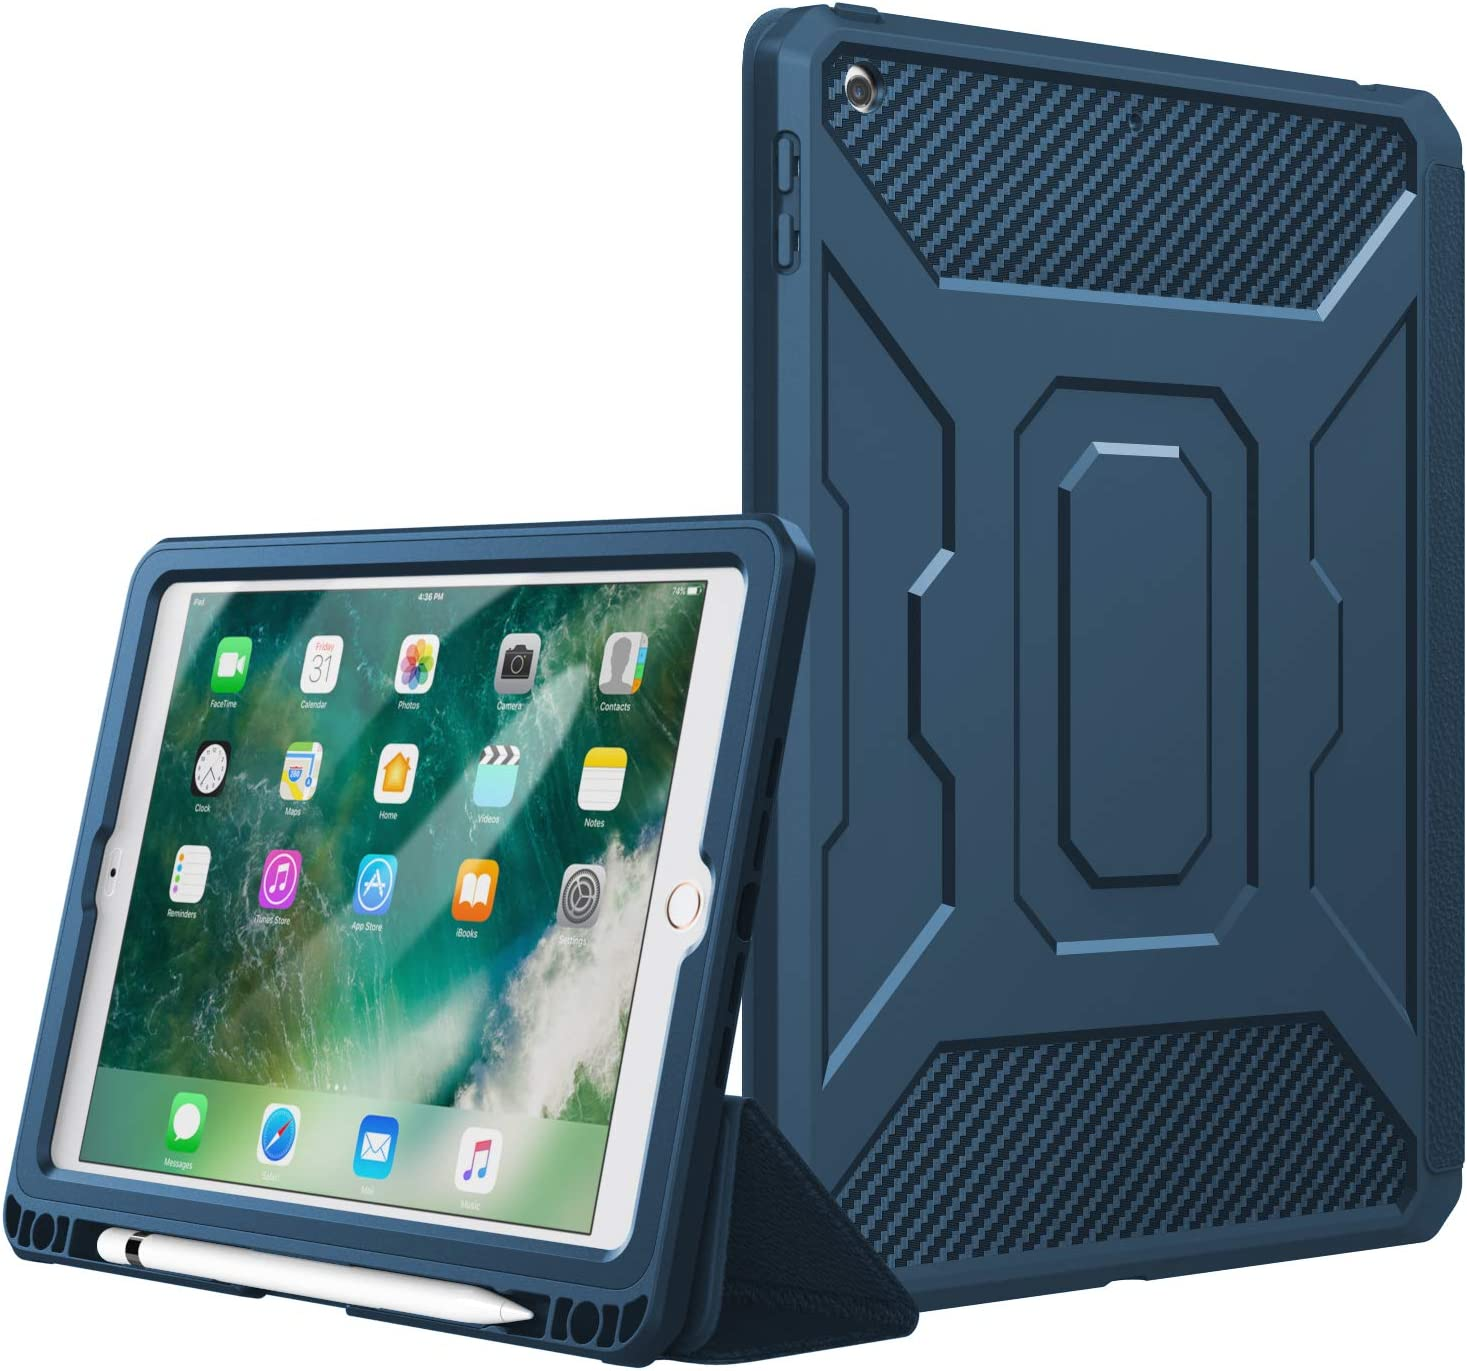 TiMOVO Case for 2017/2018 iPad 9.7 5th/6th Generation, Full-Body Shockproof Trifold Rugged Protective Case, [Built-in Screen Protector] with Auto Sleep/Wake & iPad Pencil Holder - Indigo